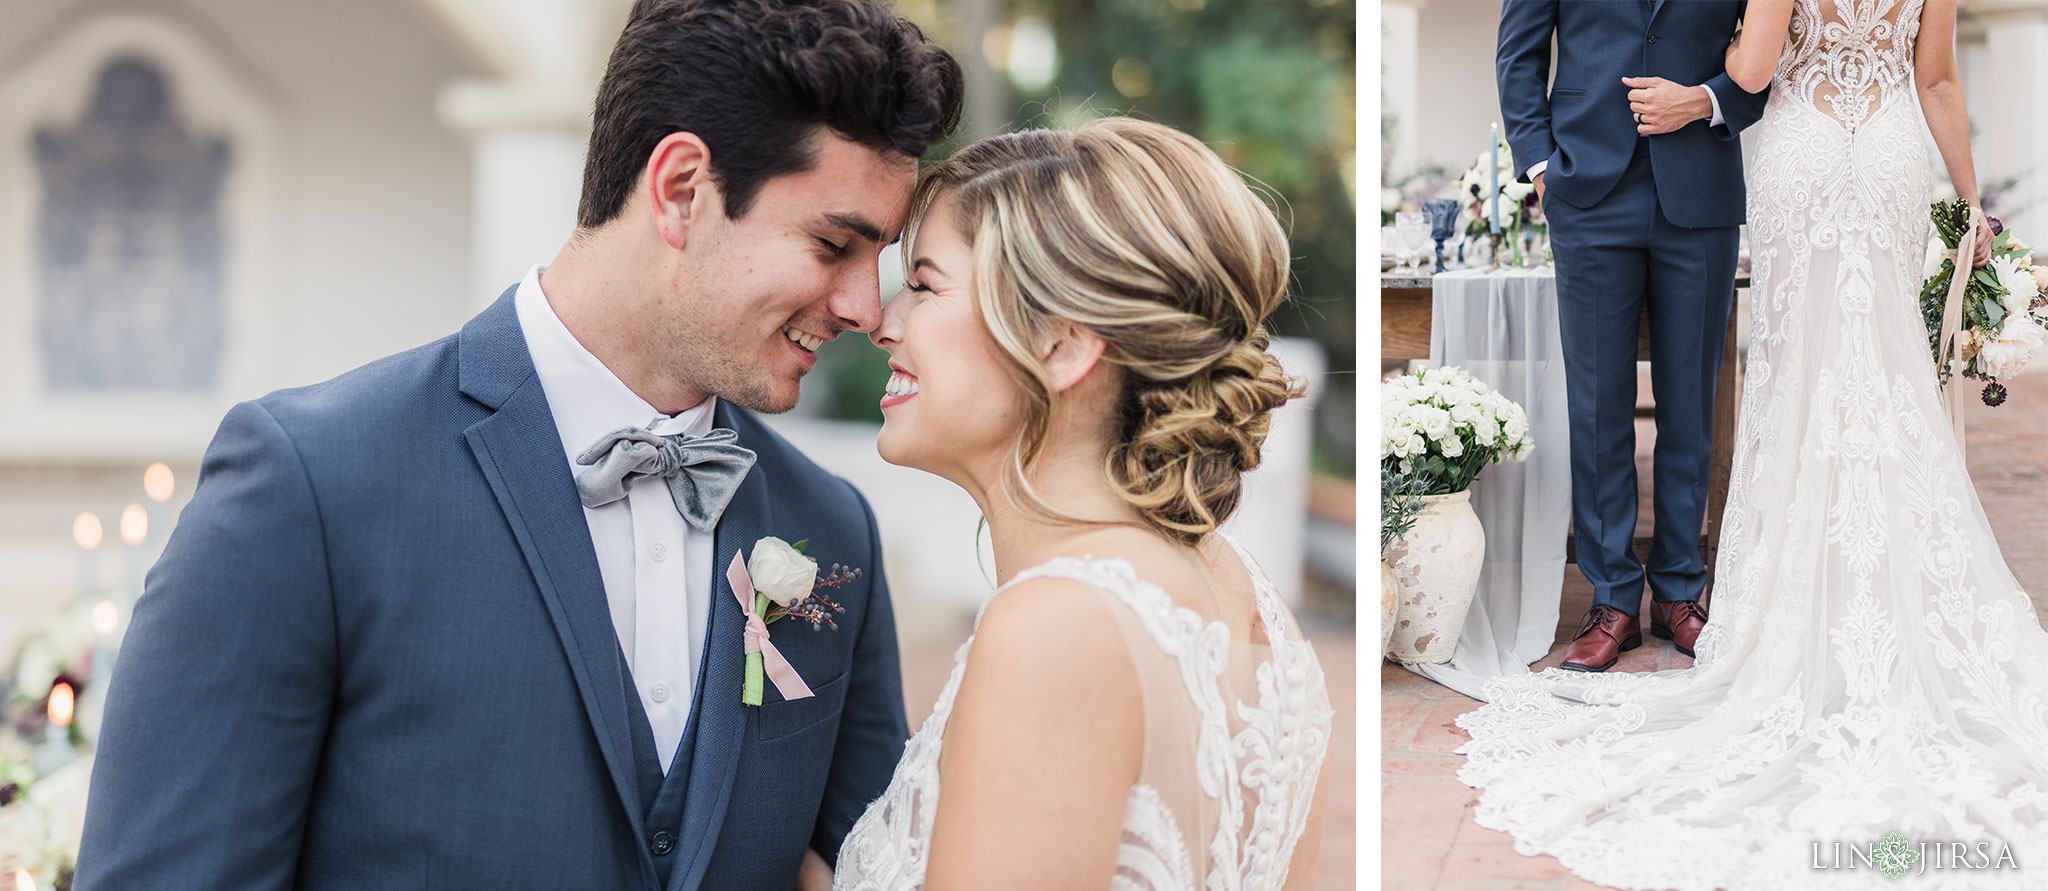 34 Rancho Las Lomas Stylized Wedding Photography